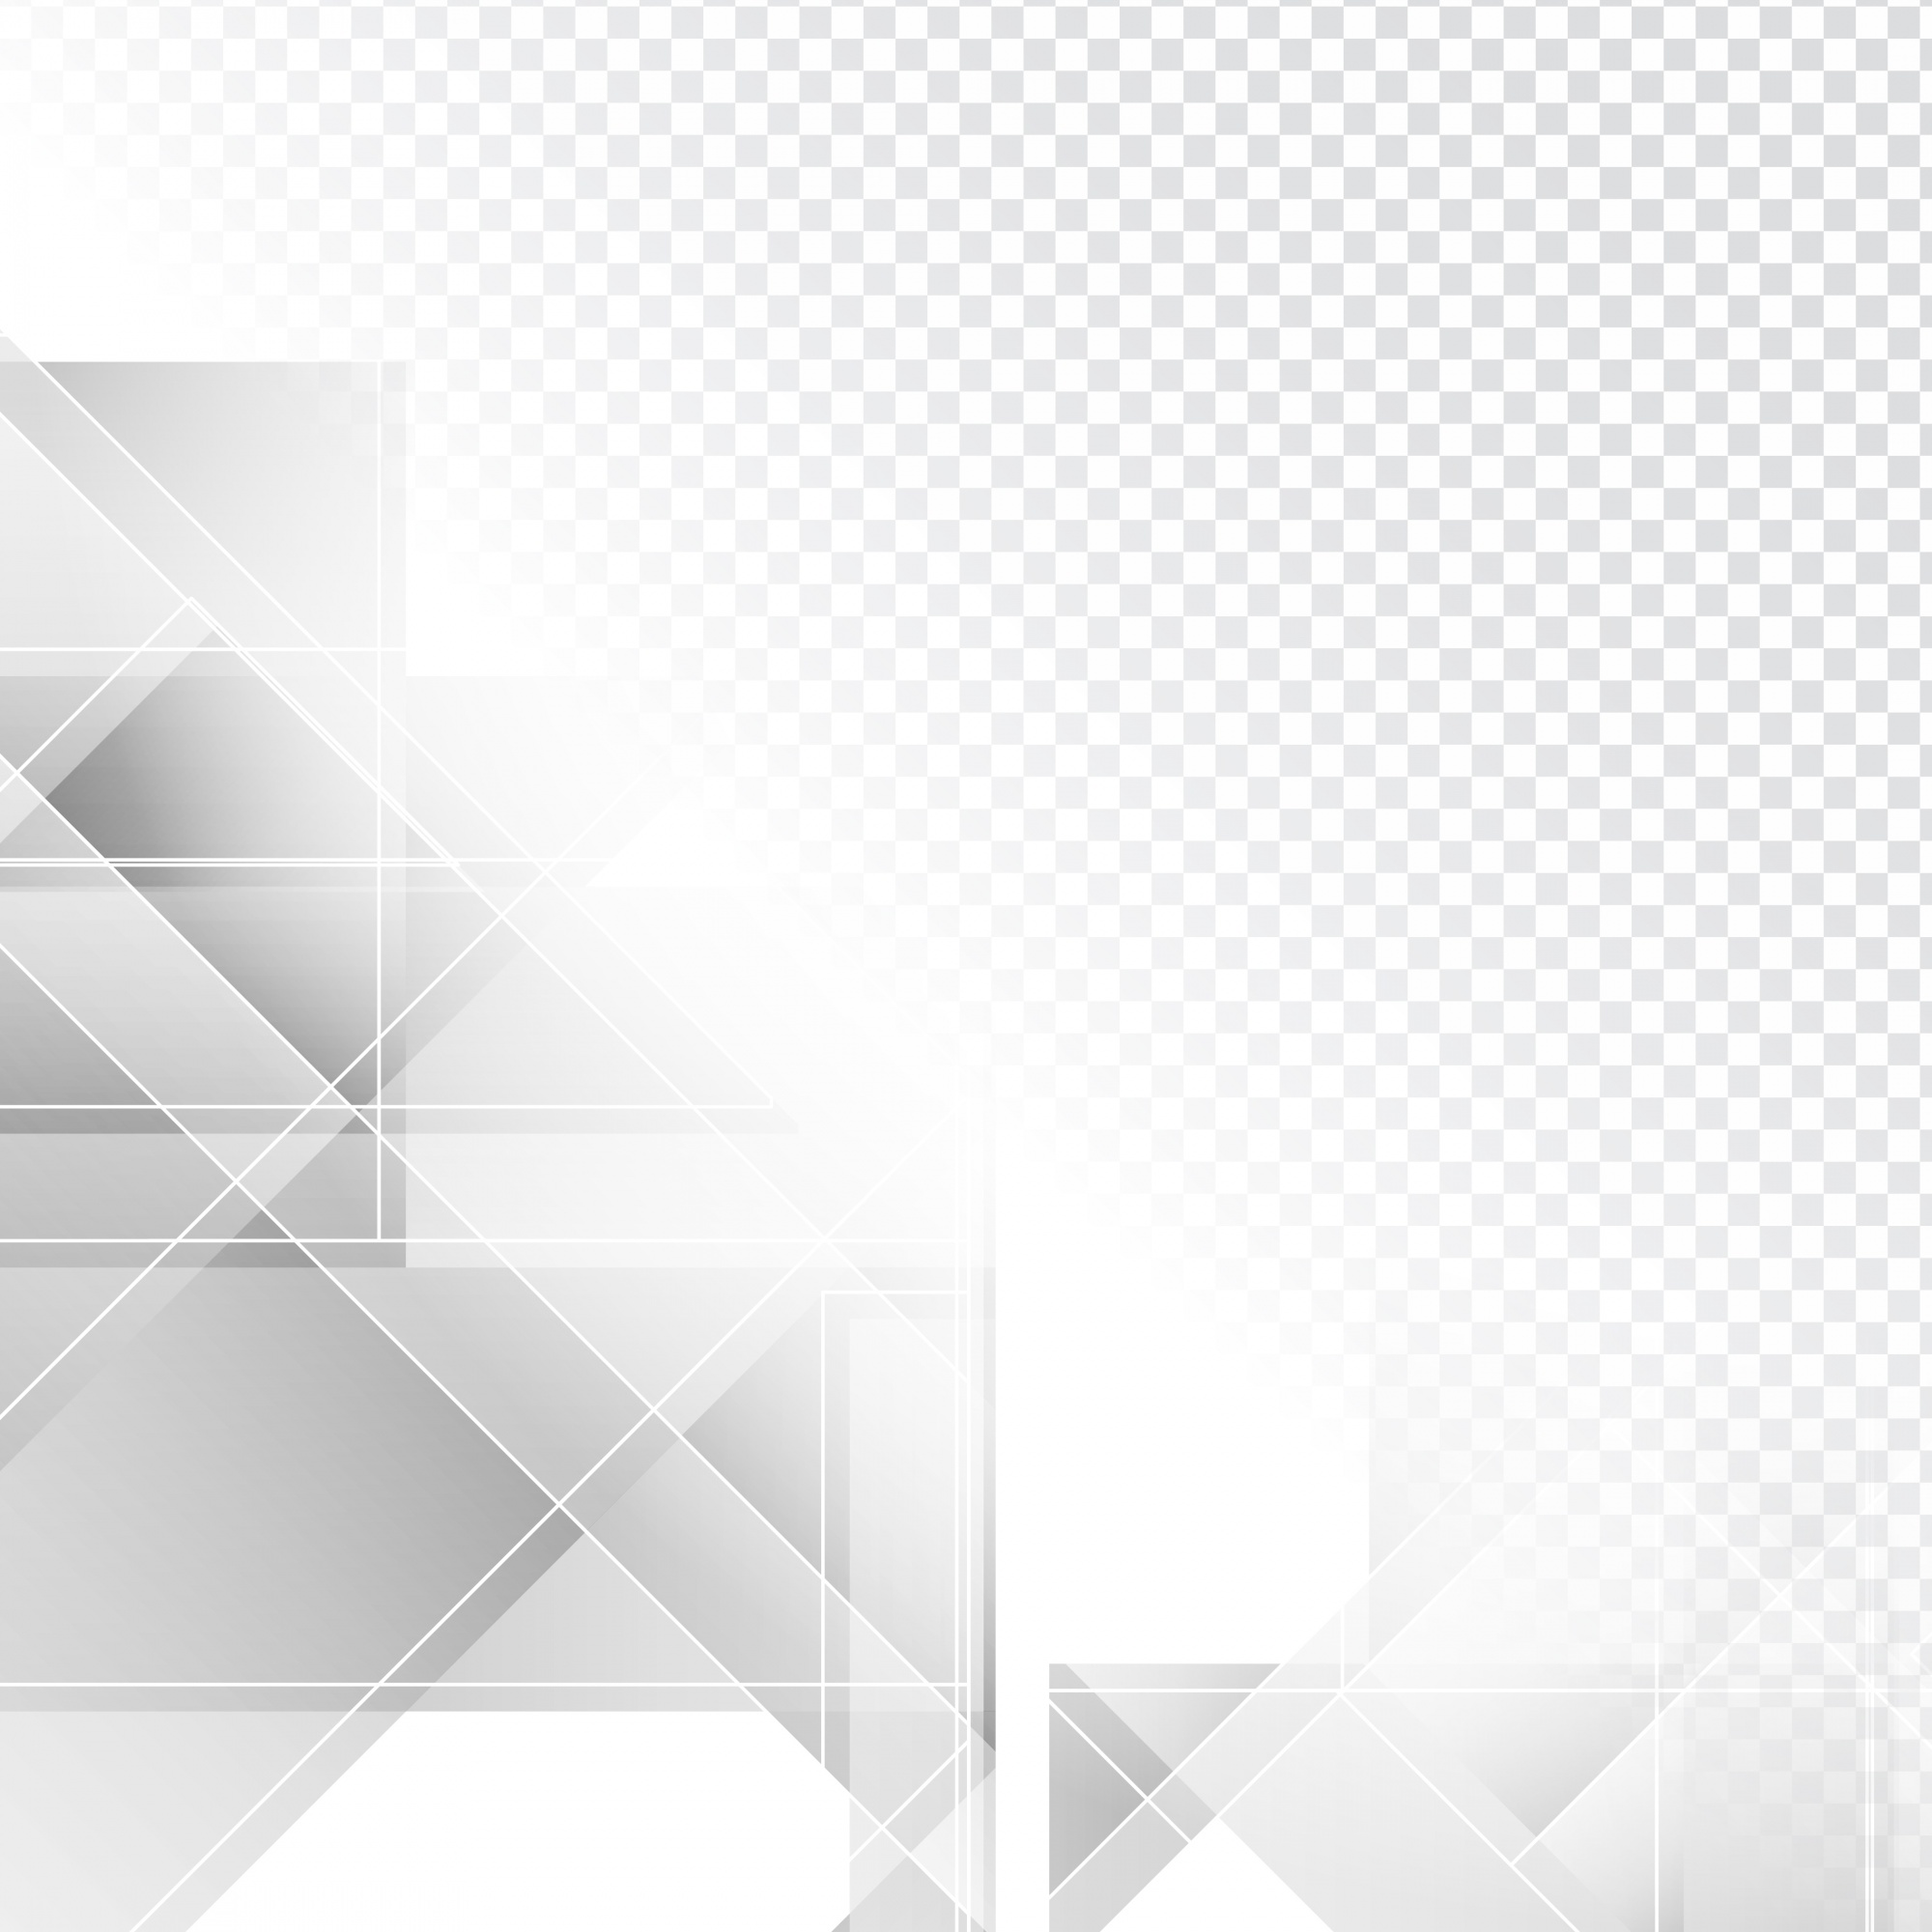 Gray polygonal shapes for backgrounds